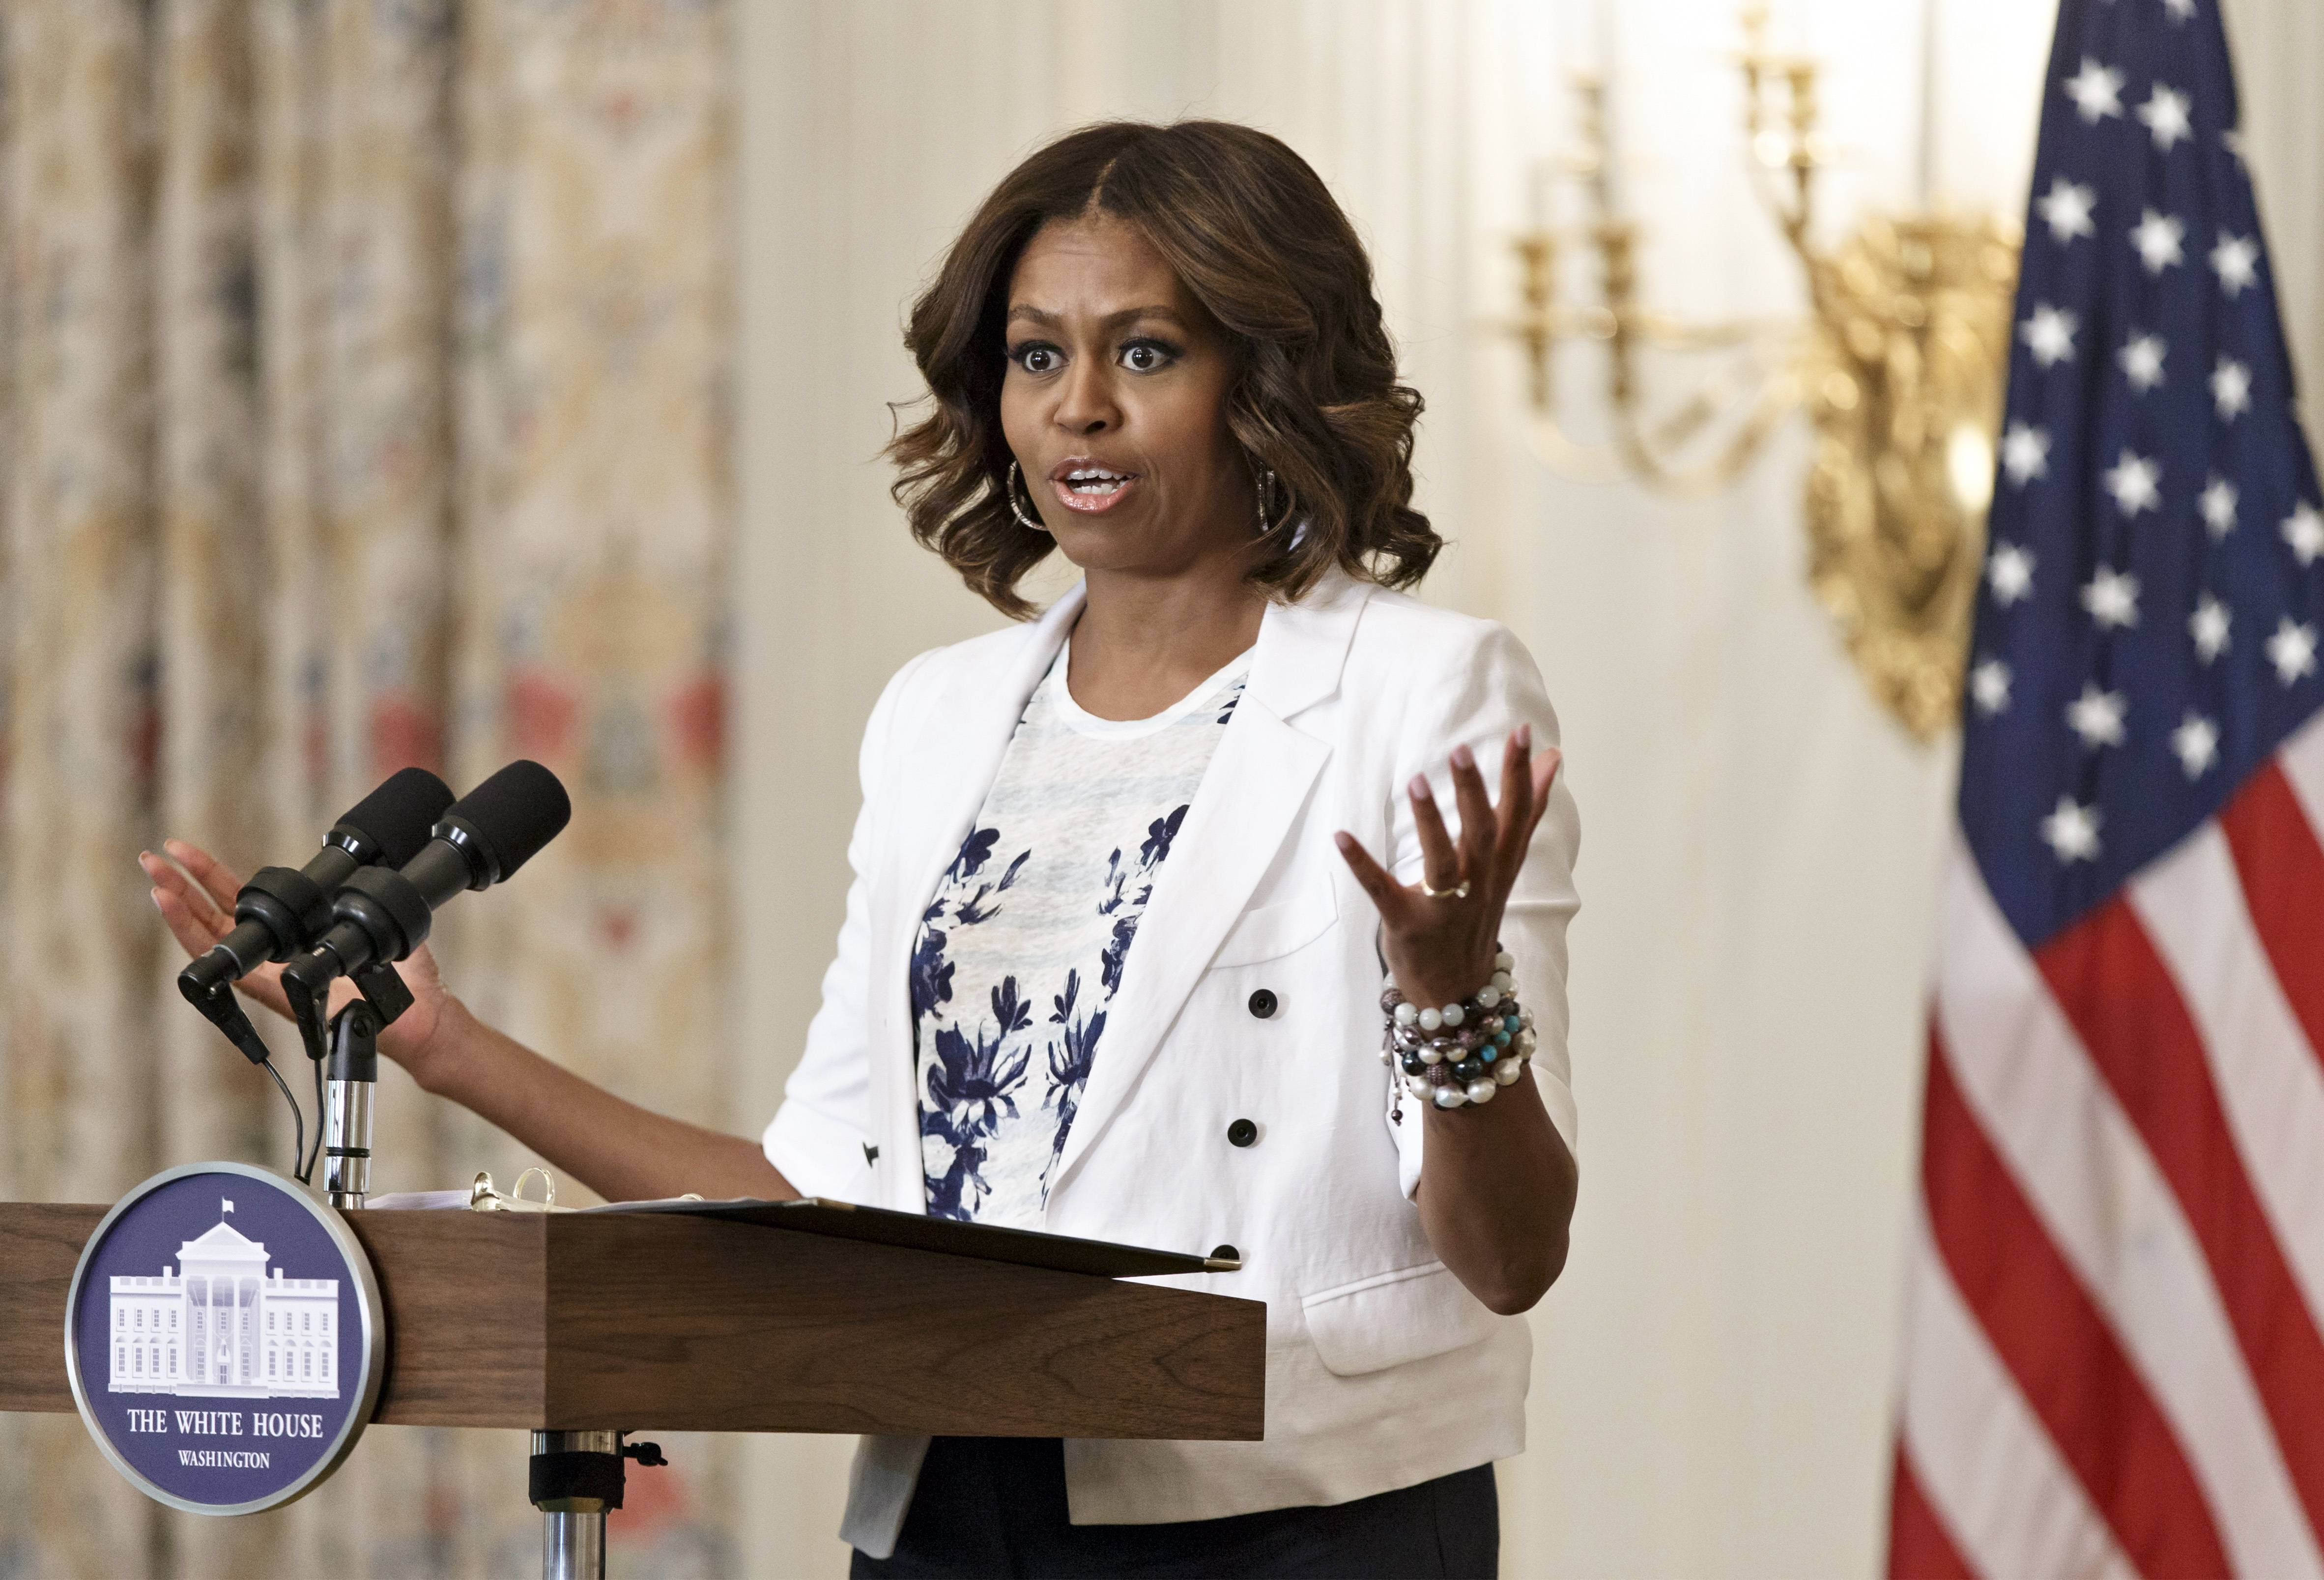 First lady Michelle Obama, shown at the White House on Tuesday, attended a Democratic National Committee fundraiser Thursday in Chicago.